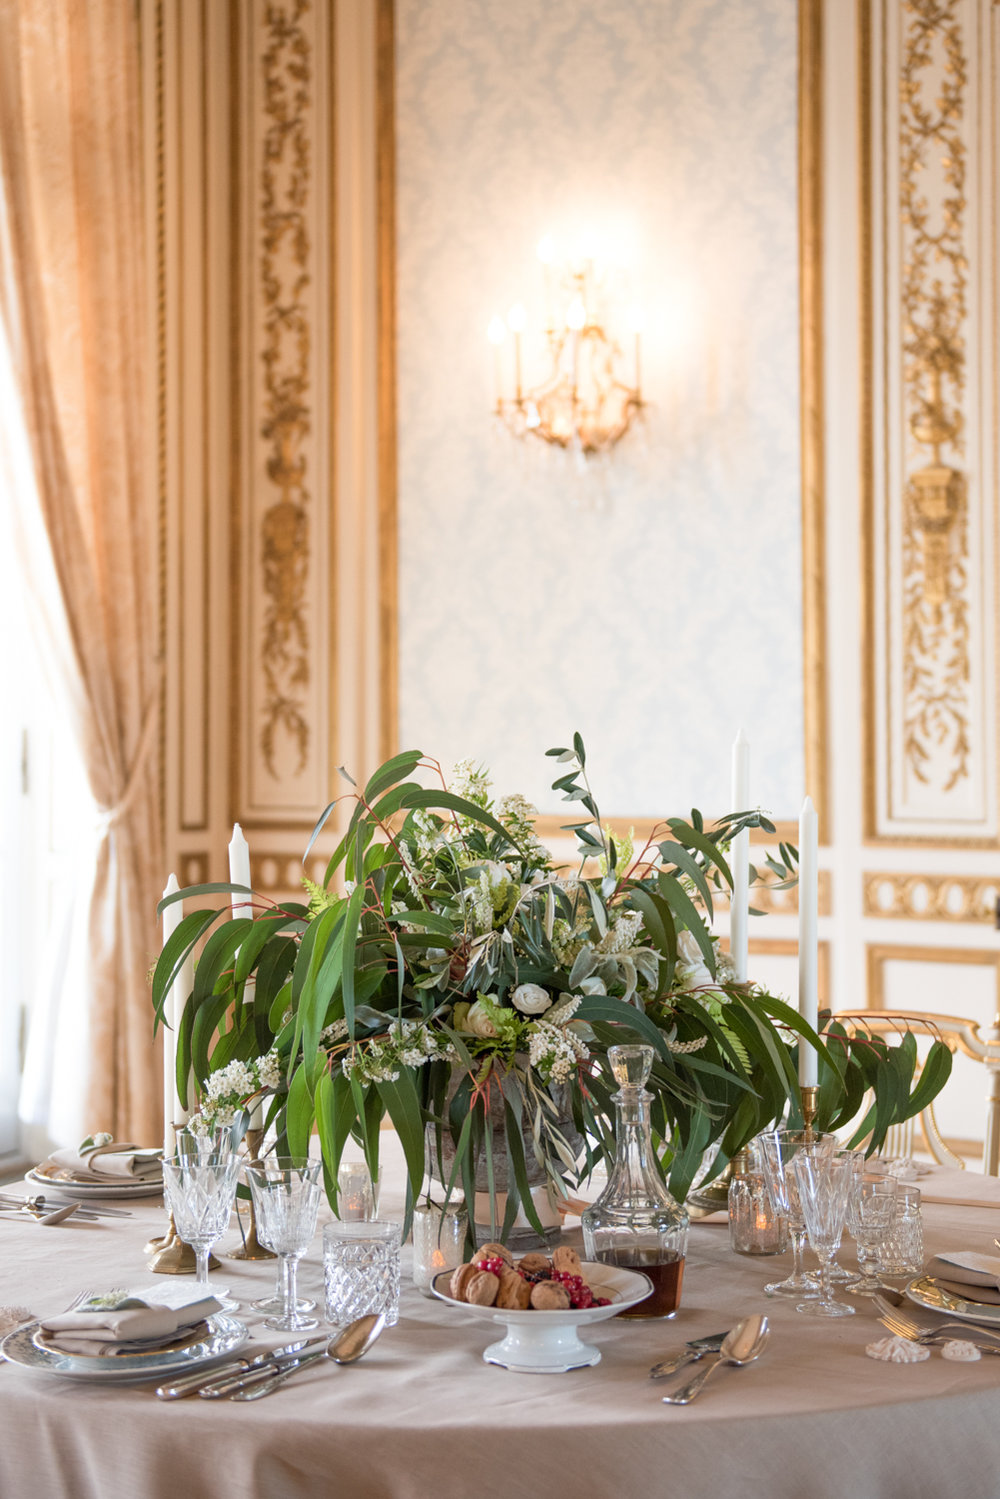 Opulently set reception table in Pavillon de la Musique ballroom matches classic vintage French aesthetic; Sylvie Gil Photography